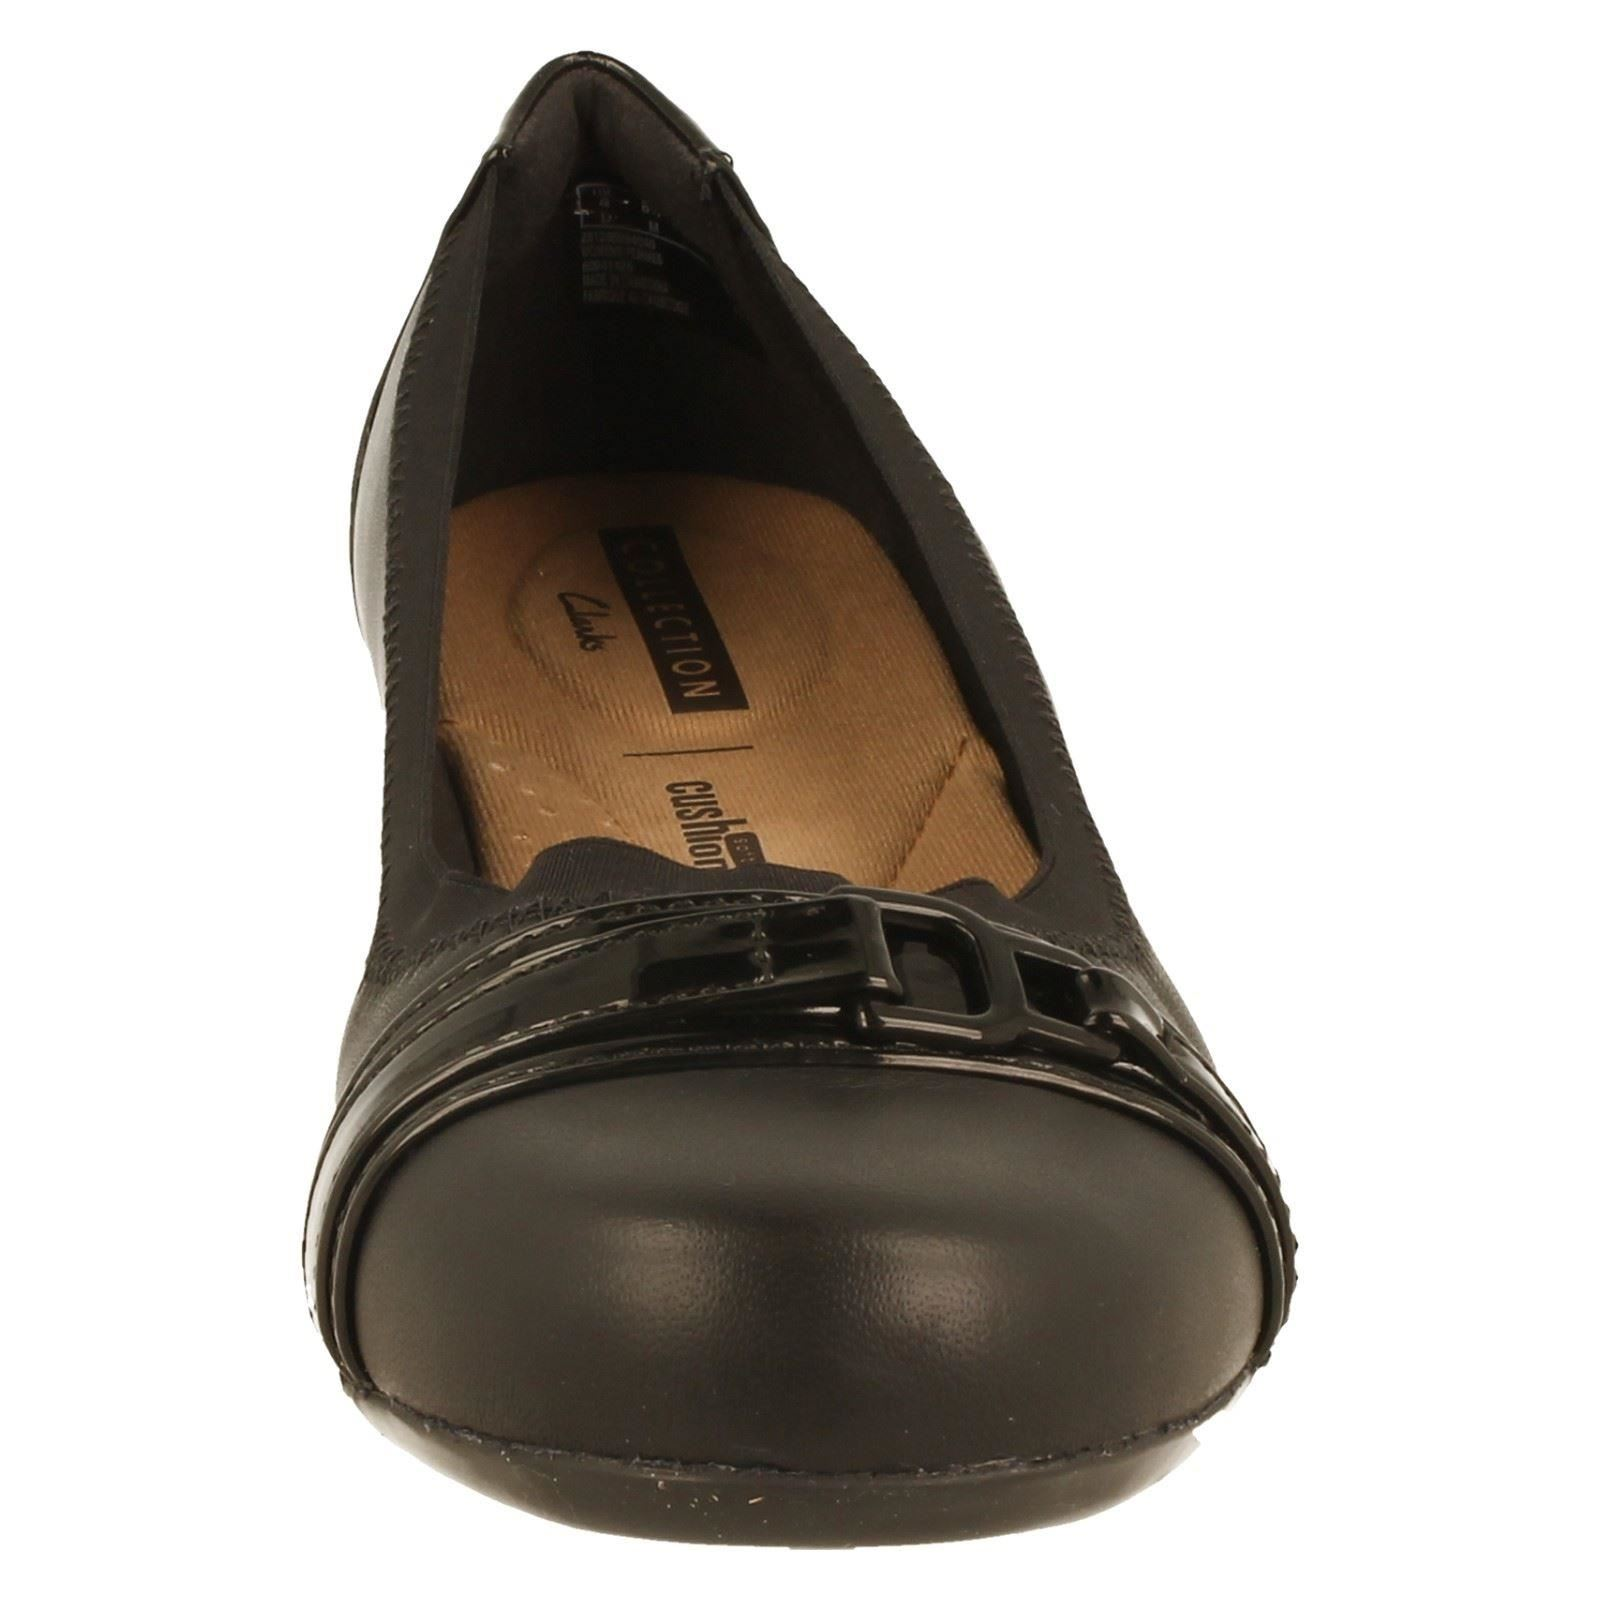 Ladies Clarks Shoes The Light Style Kinzie Light The 283333